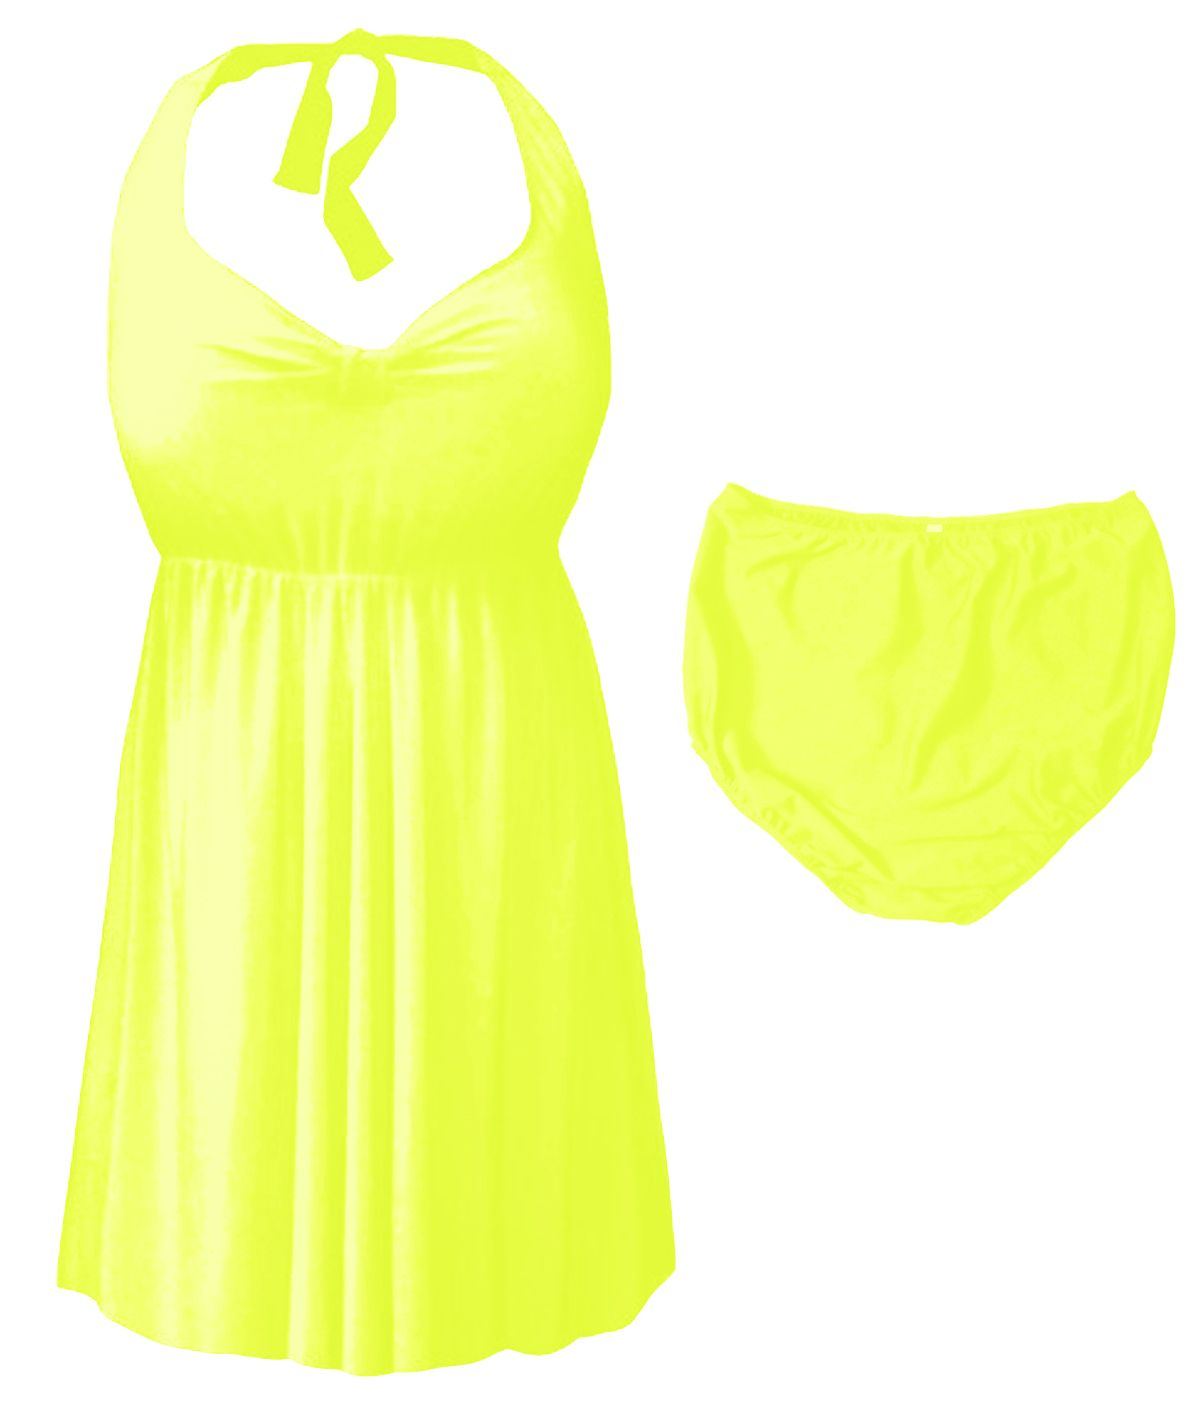 4728ac26da276 CLEARANCE! Neon Yellow Plus Size   Supersize Halter 2pc Swimdress 2x 4x